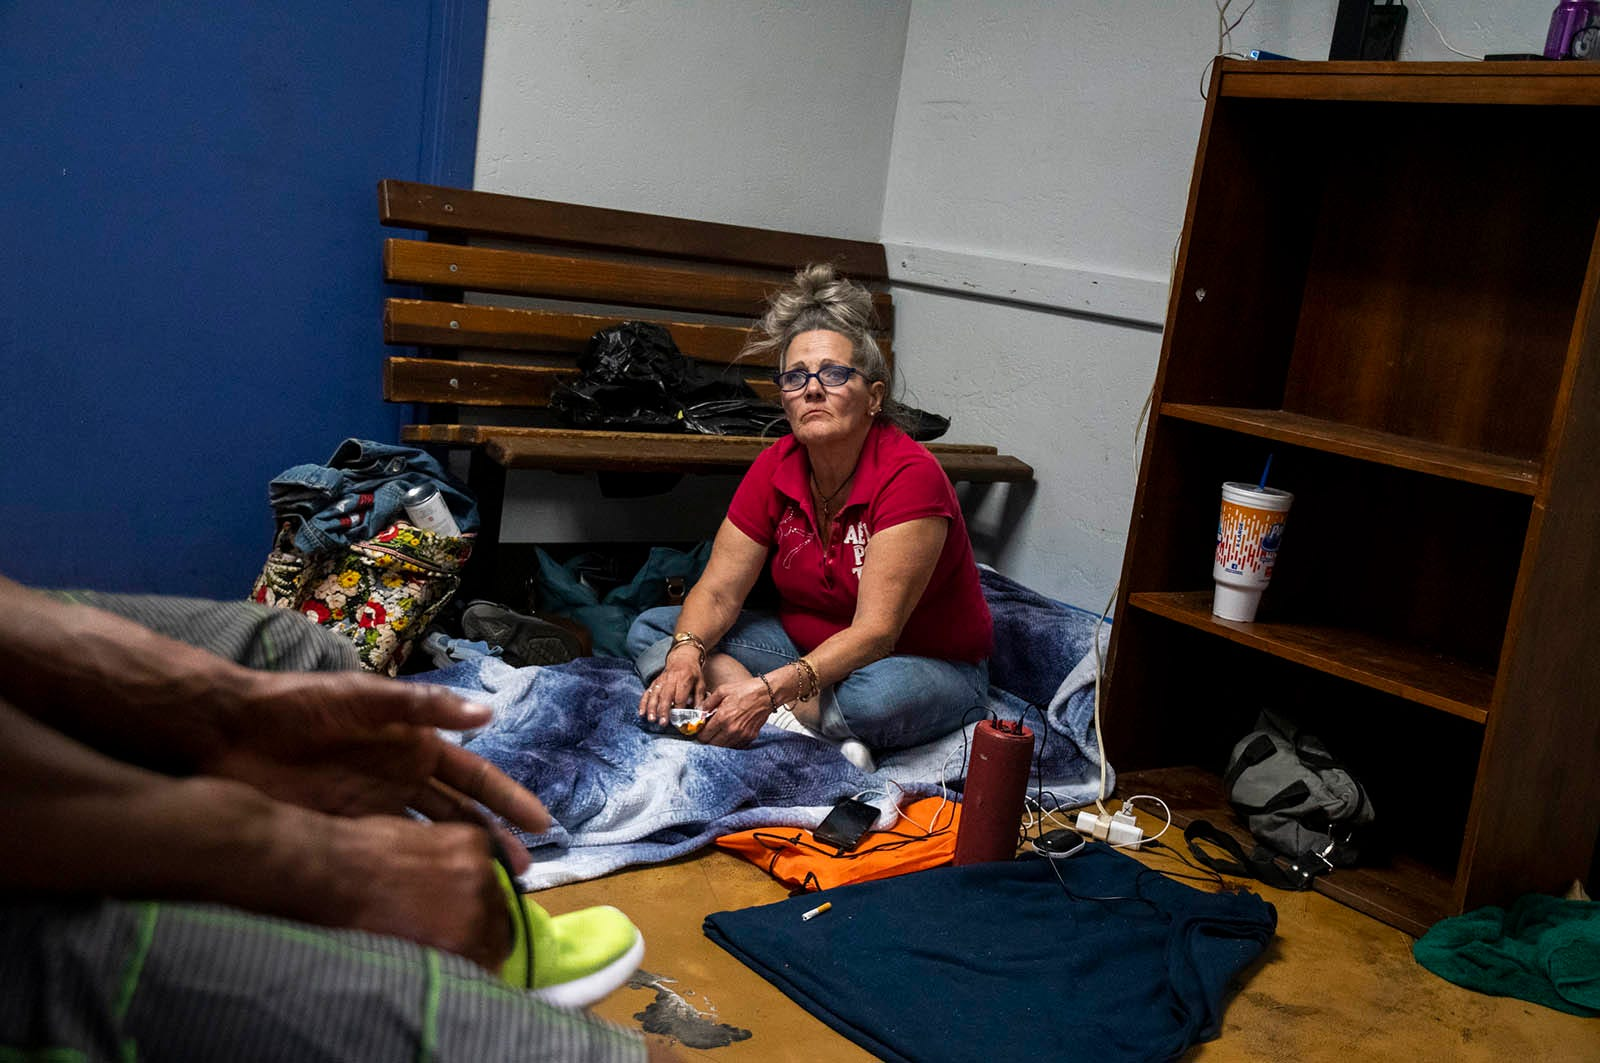 Darlene Carchedi speaks with friend Romeo Lopez as they charge their phones inside the Andre House on Feb. 27, 2020, in Phoenix.